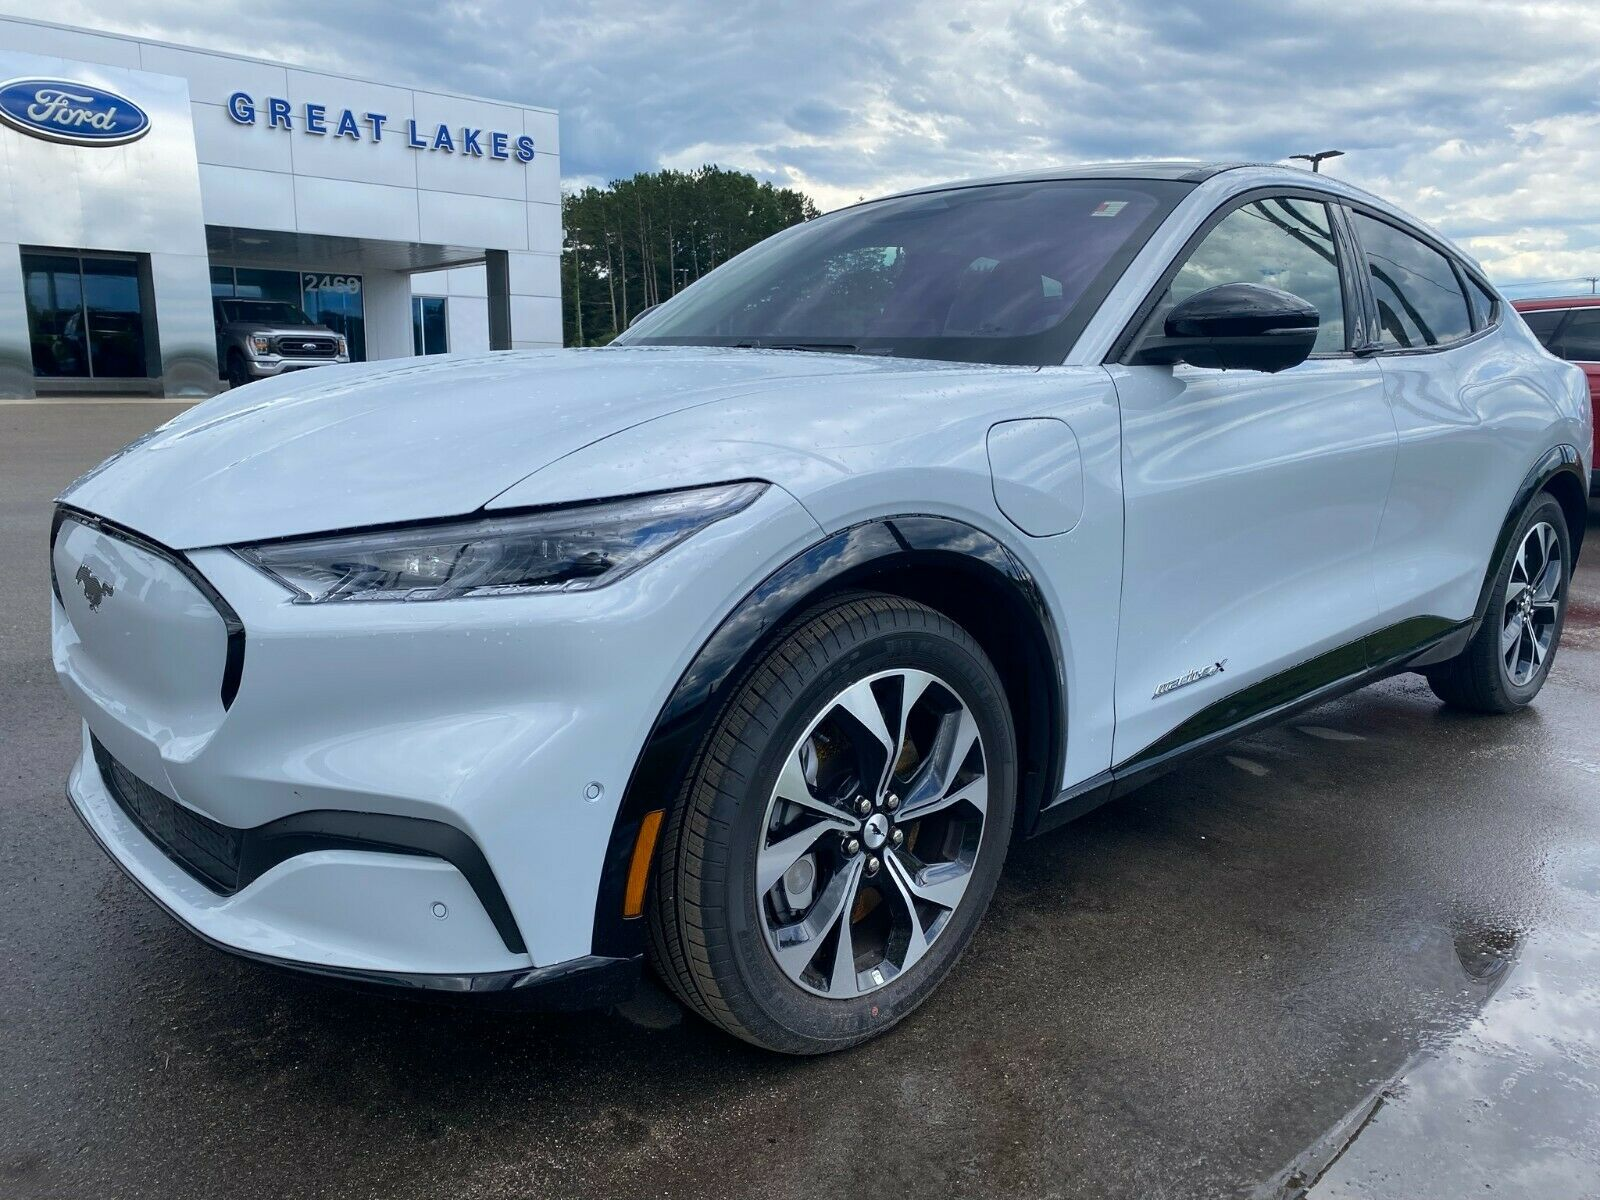 21 Extended range AWD Space White 88kwh ext battery full Electric Mach E plug in